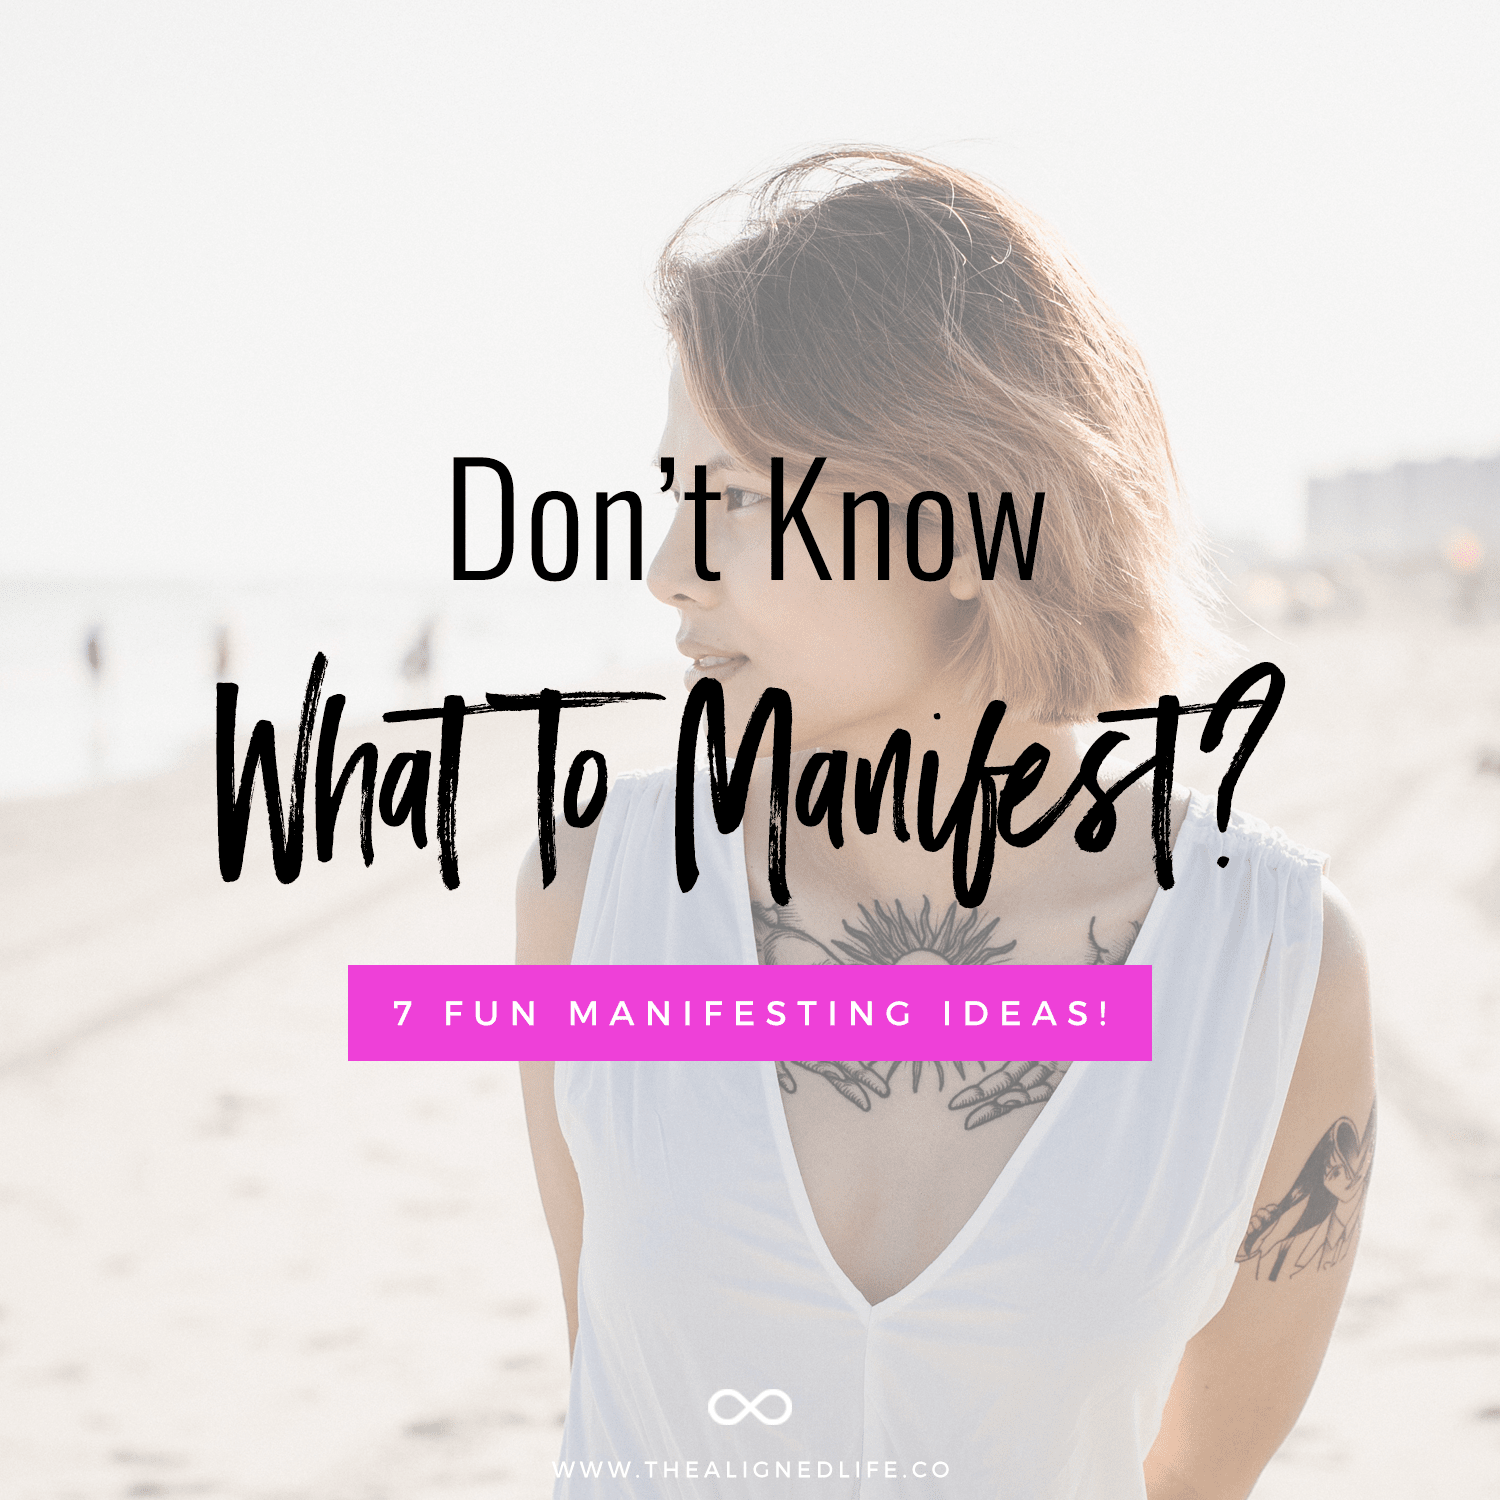 Don't Know What To Manifest? 7 Fun Manifesting Ideas!